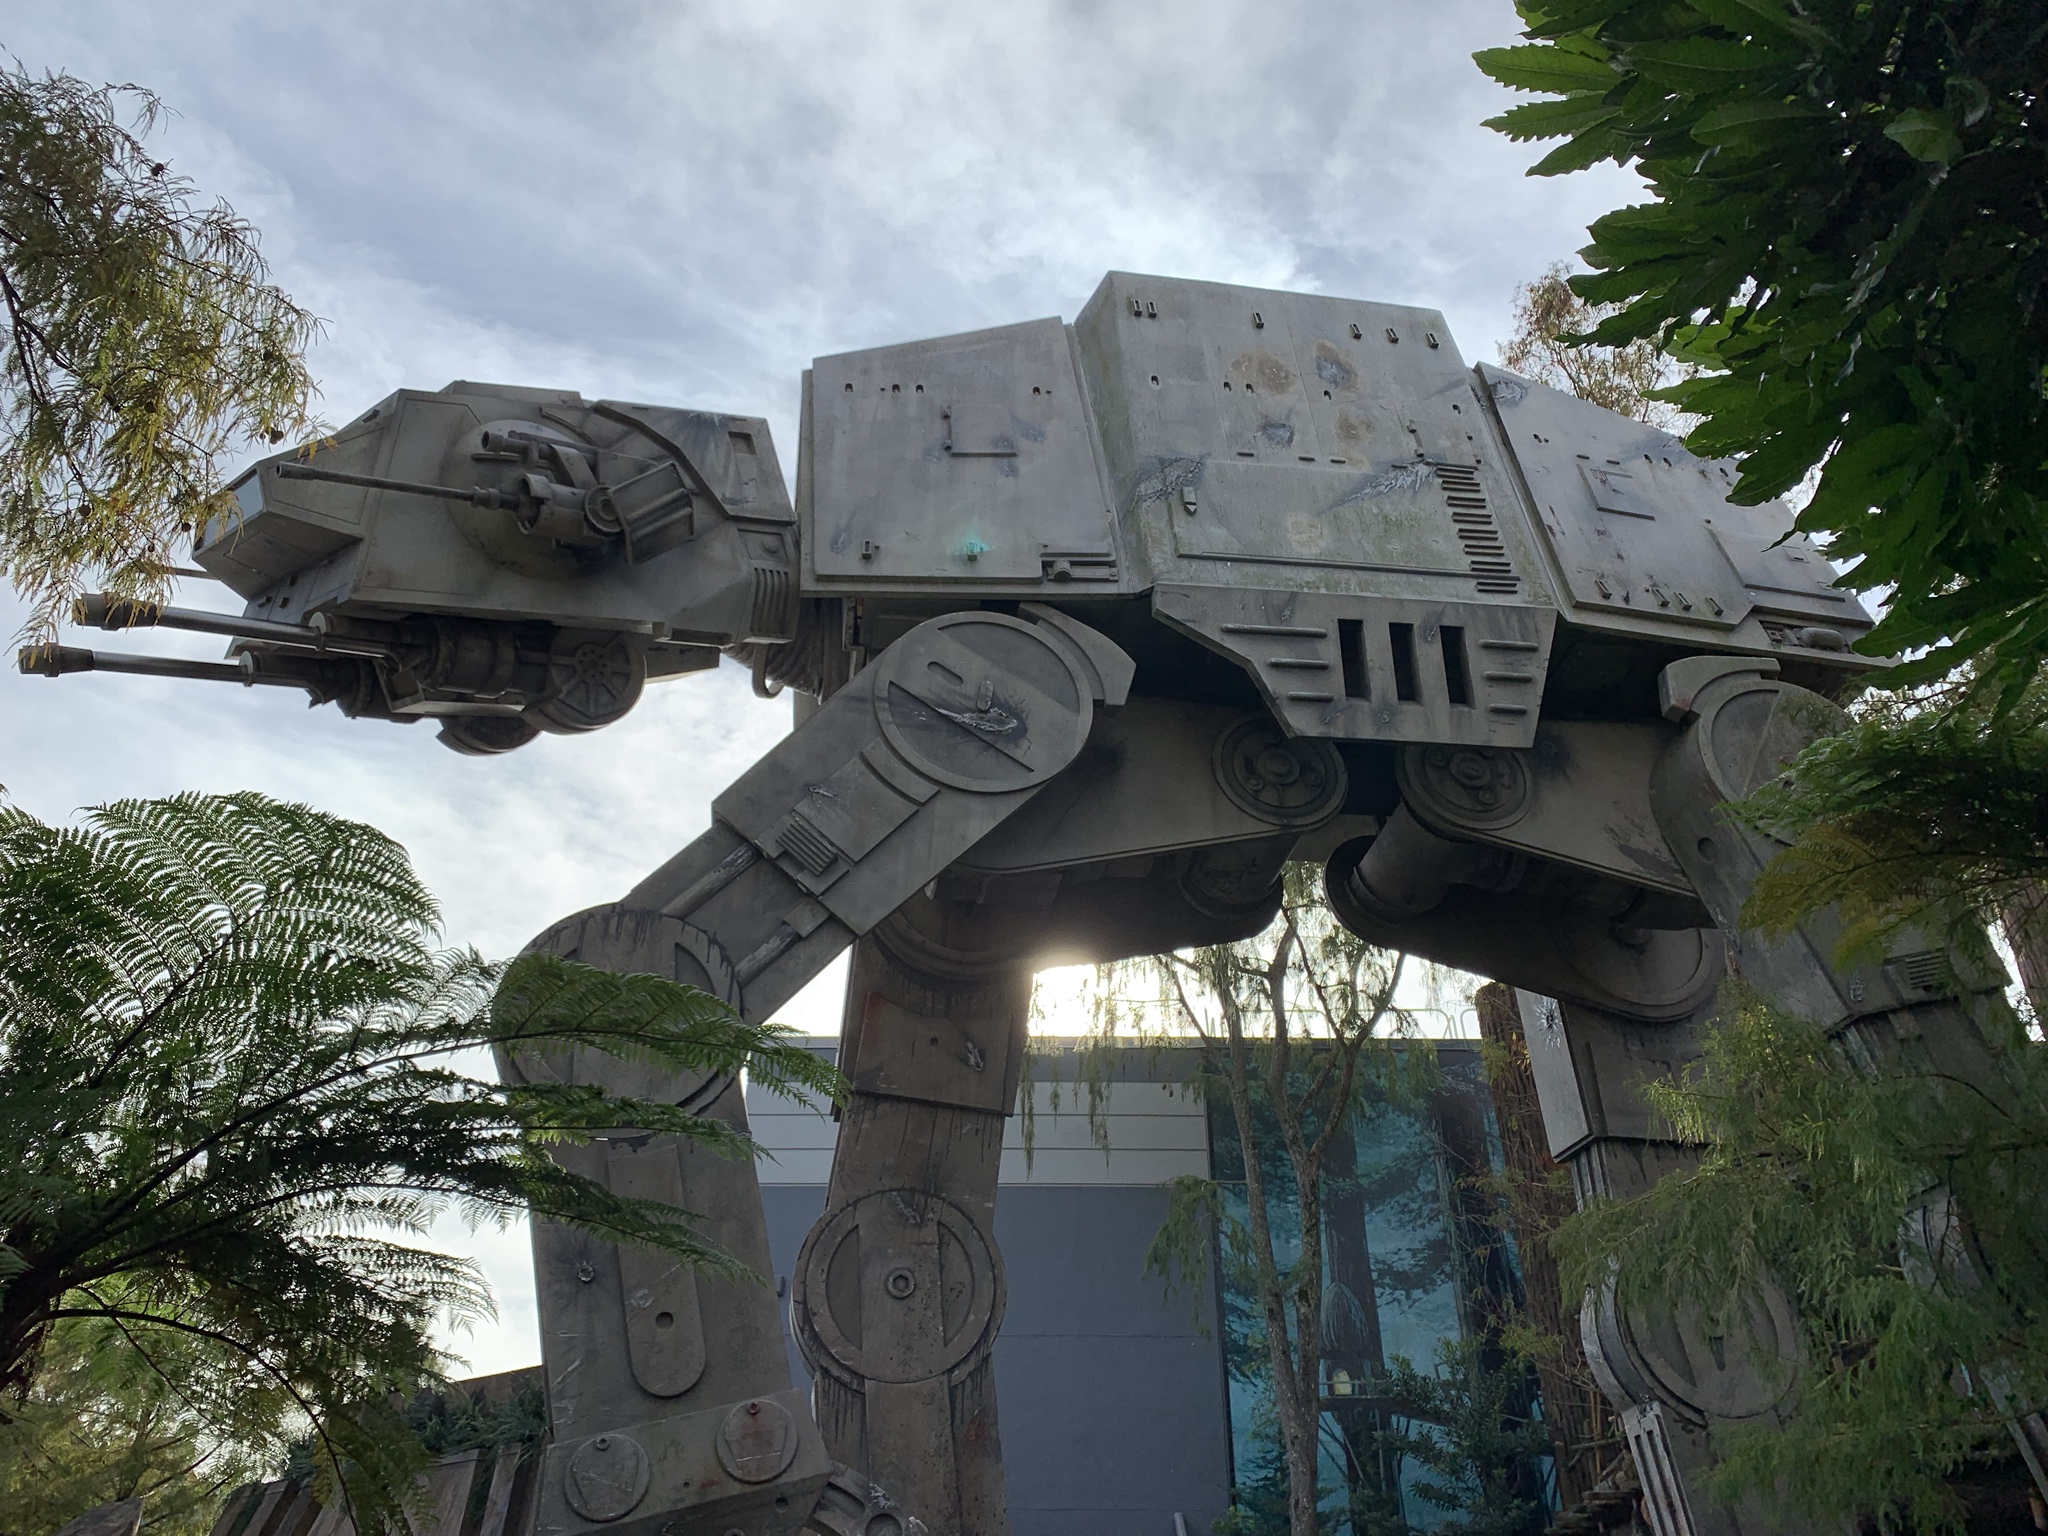 Visited Disney World the other week and was SO excited to see this life sized AT-AT!